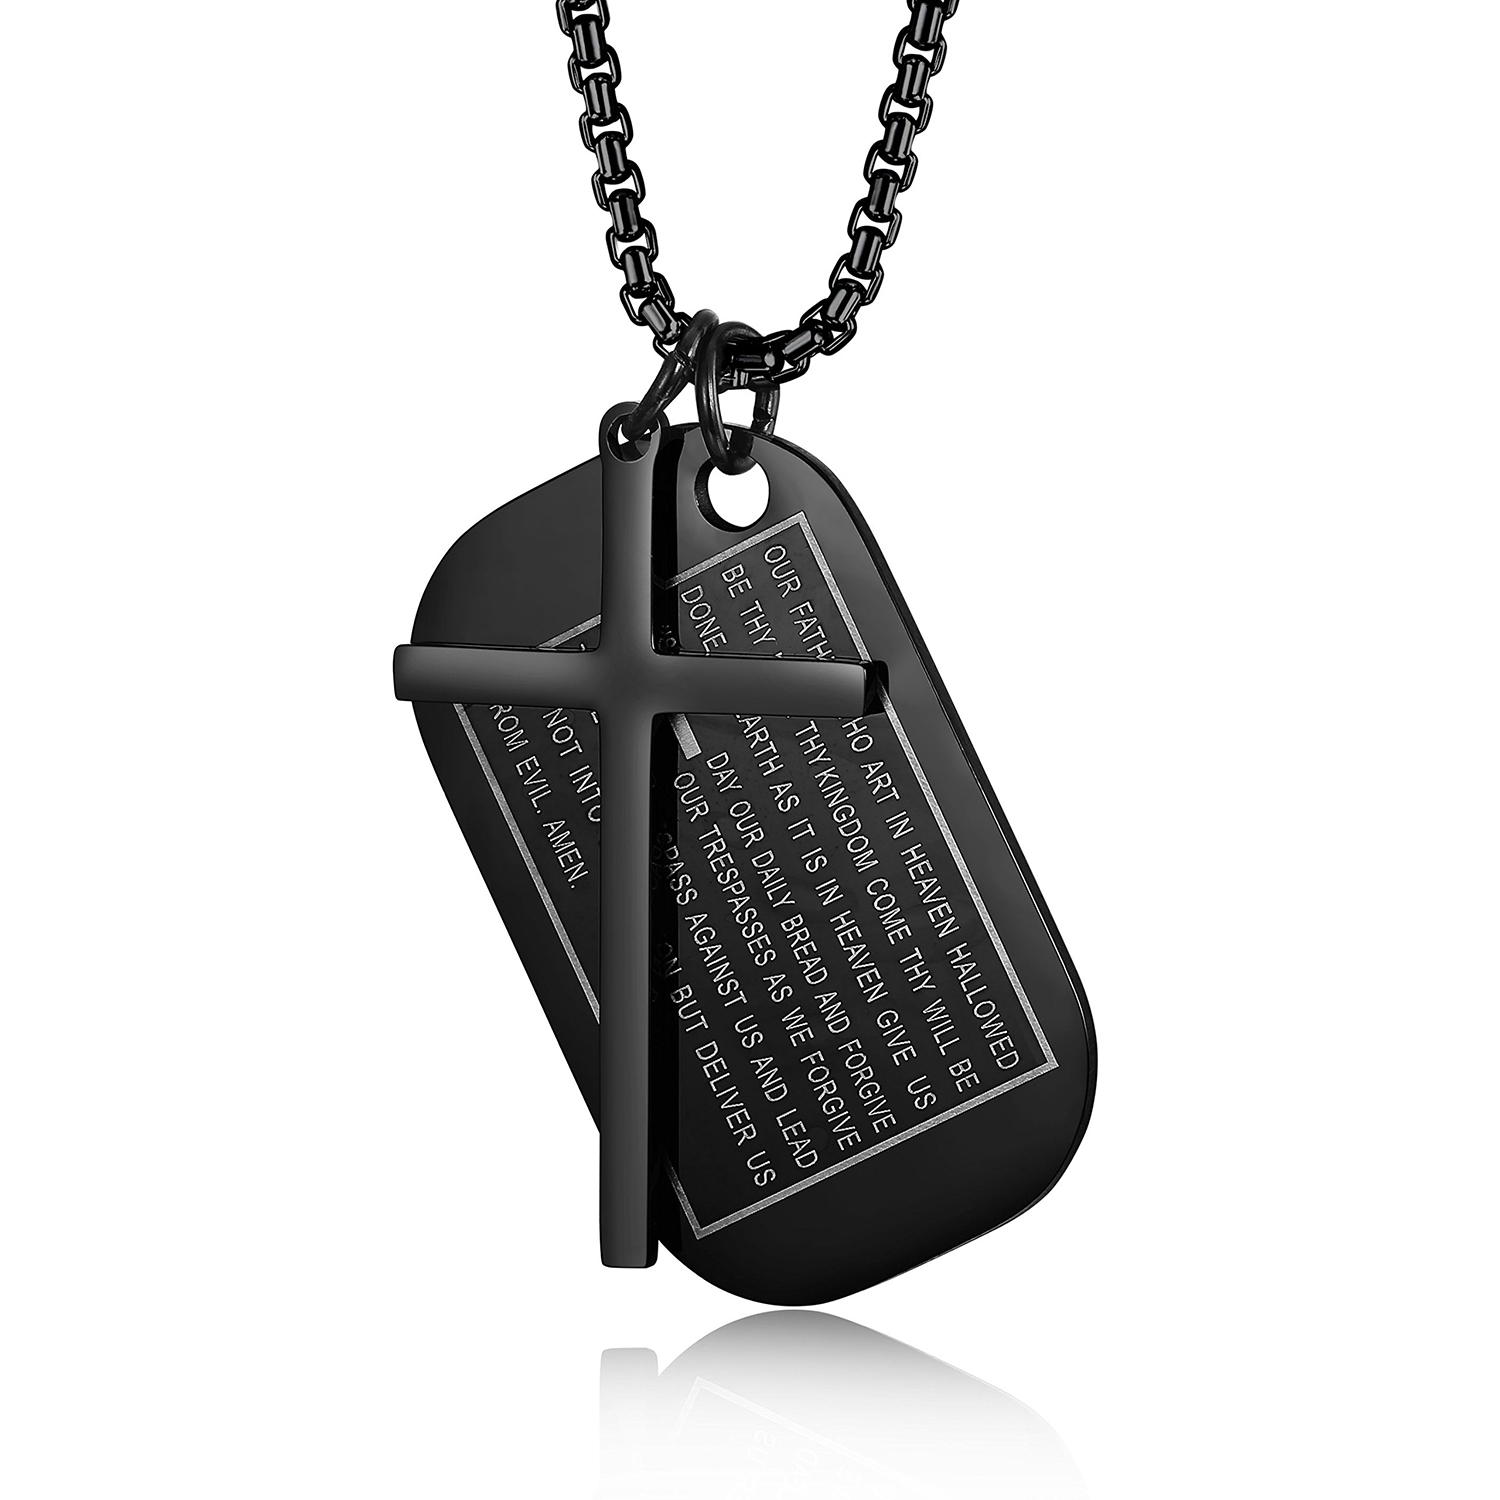 BONISKISS Men's Necklaces Male Stainless Steel Dog Tags Jewelry Free Engrave New Trendy Cross Pendant Chian Necklaces